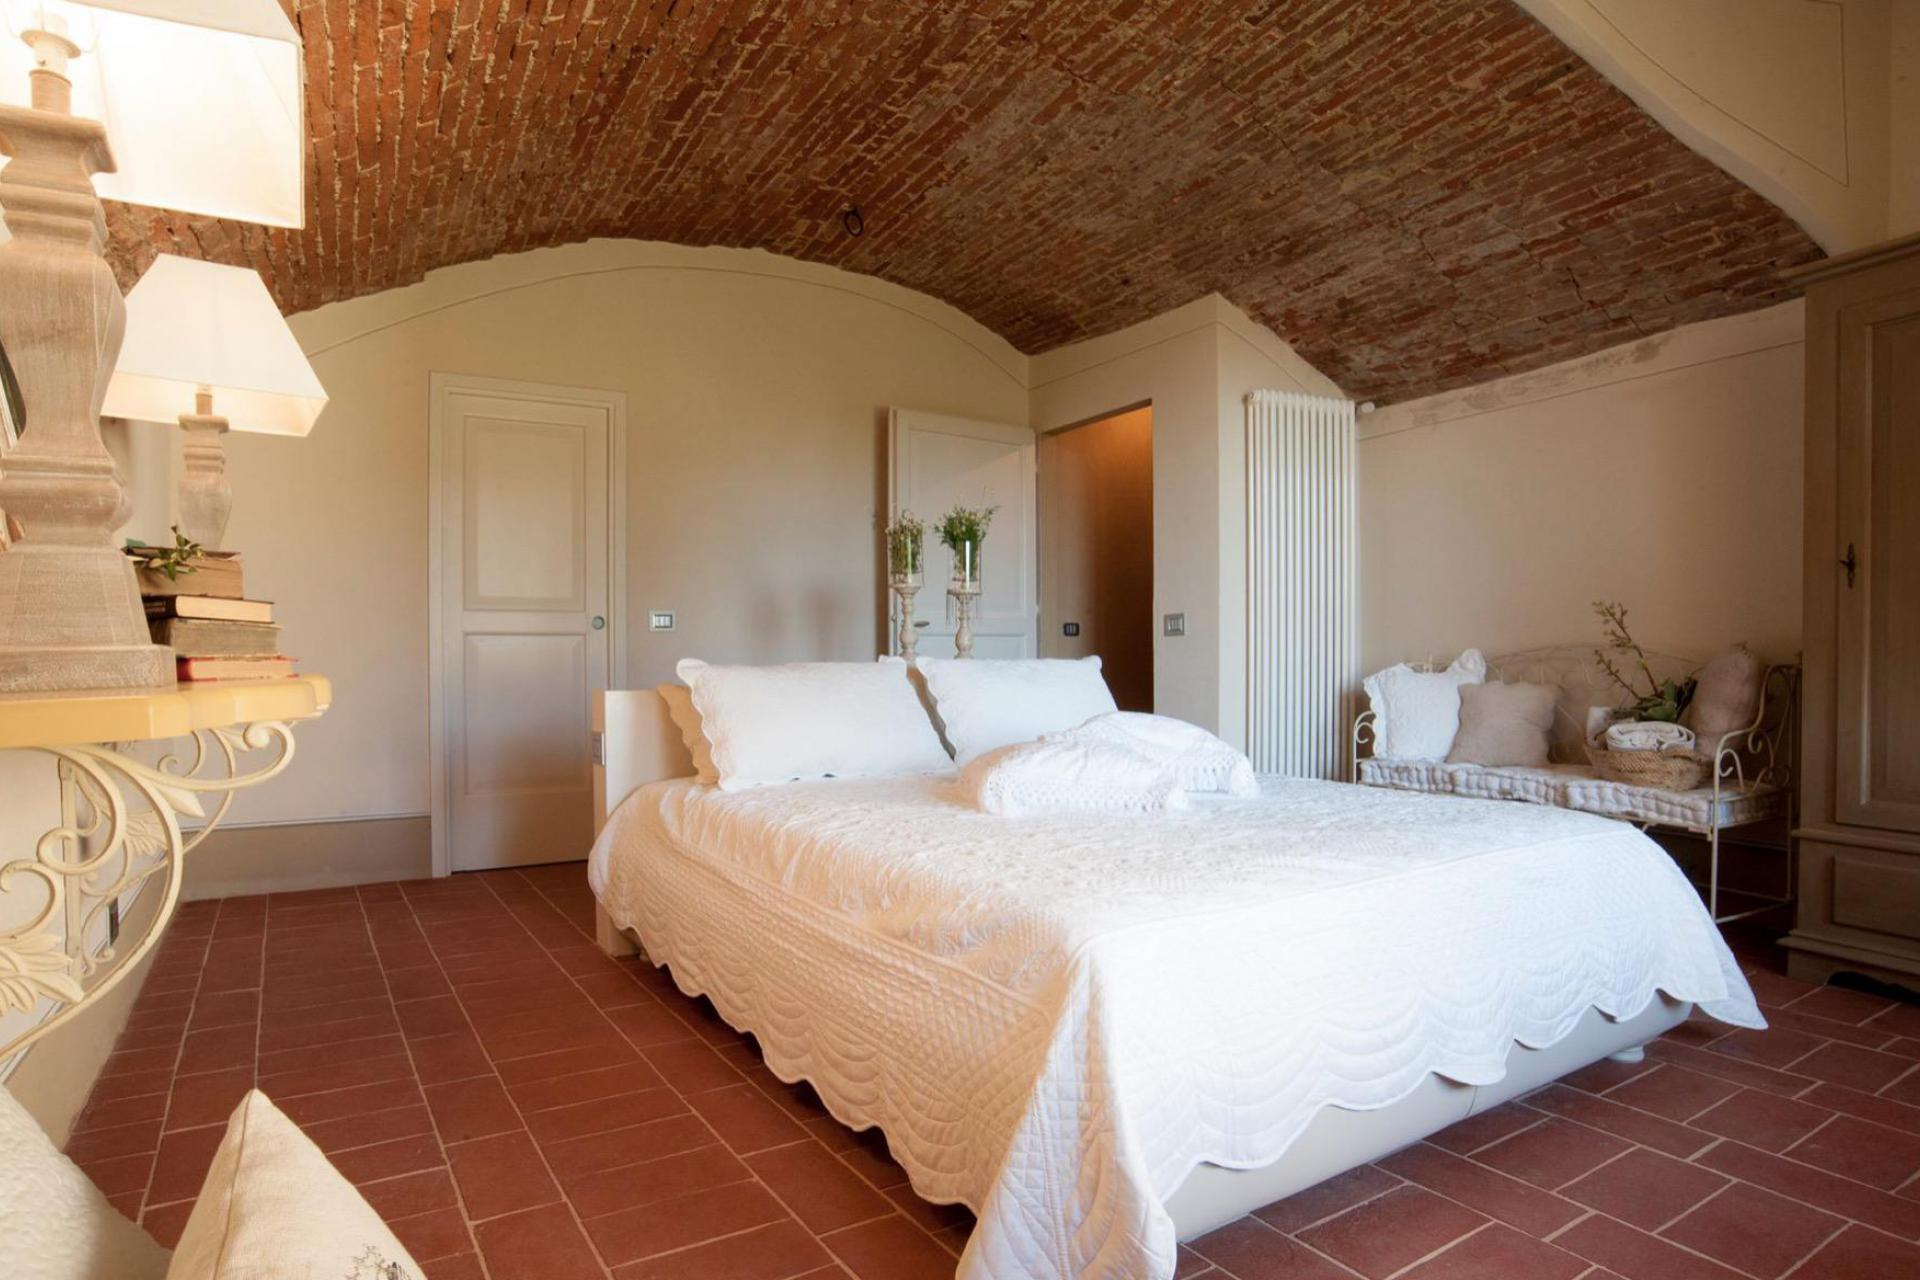 Agriturismo Tuscany Agriturismo in Tuscany with design interiors